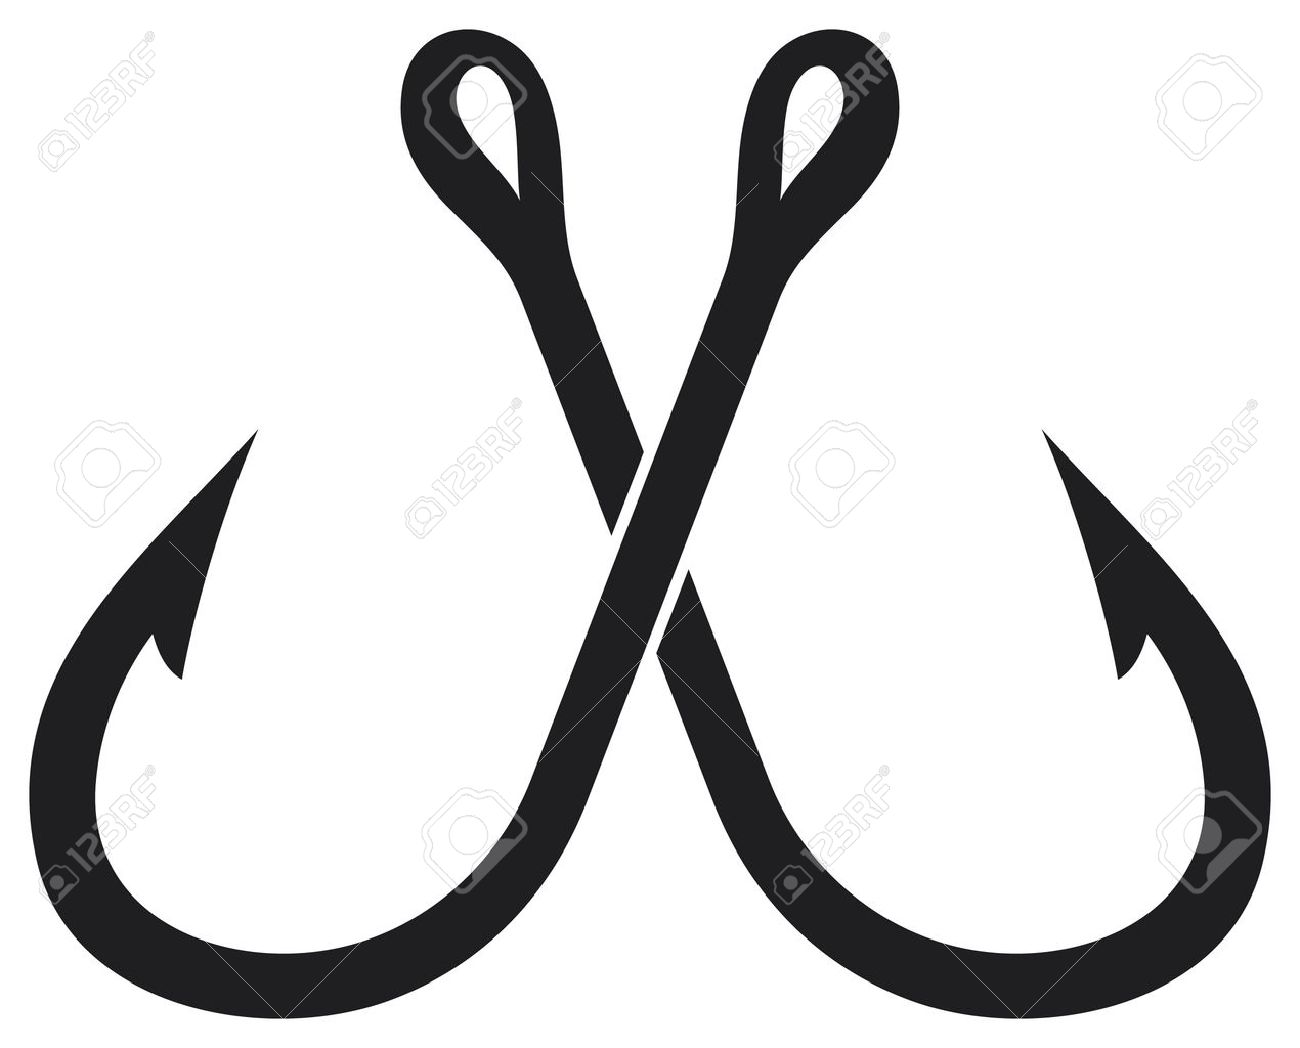 Two Crossed Fishing Hook Royalty Free Cliparts, Vectors, And Stock ...